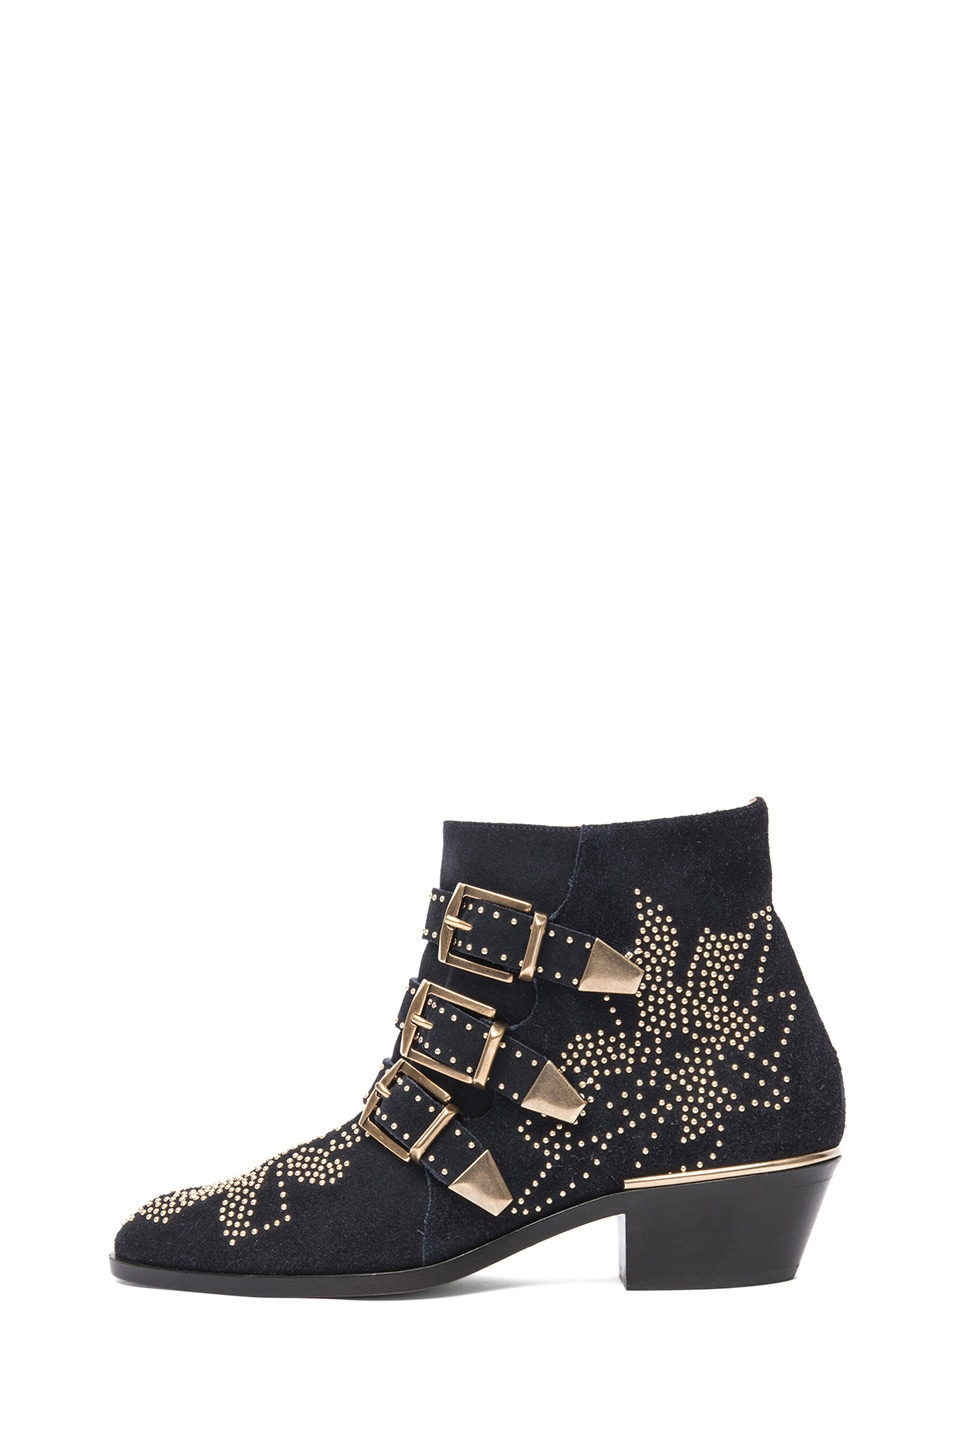 Image 1 of Chloe Susanna Suede Studded Booties in Celtic Night